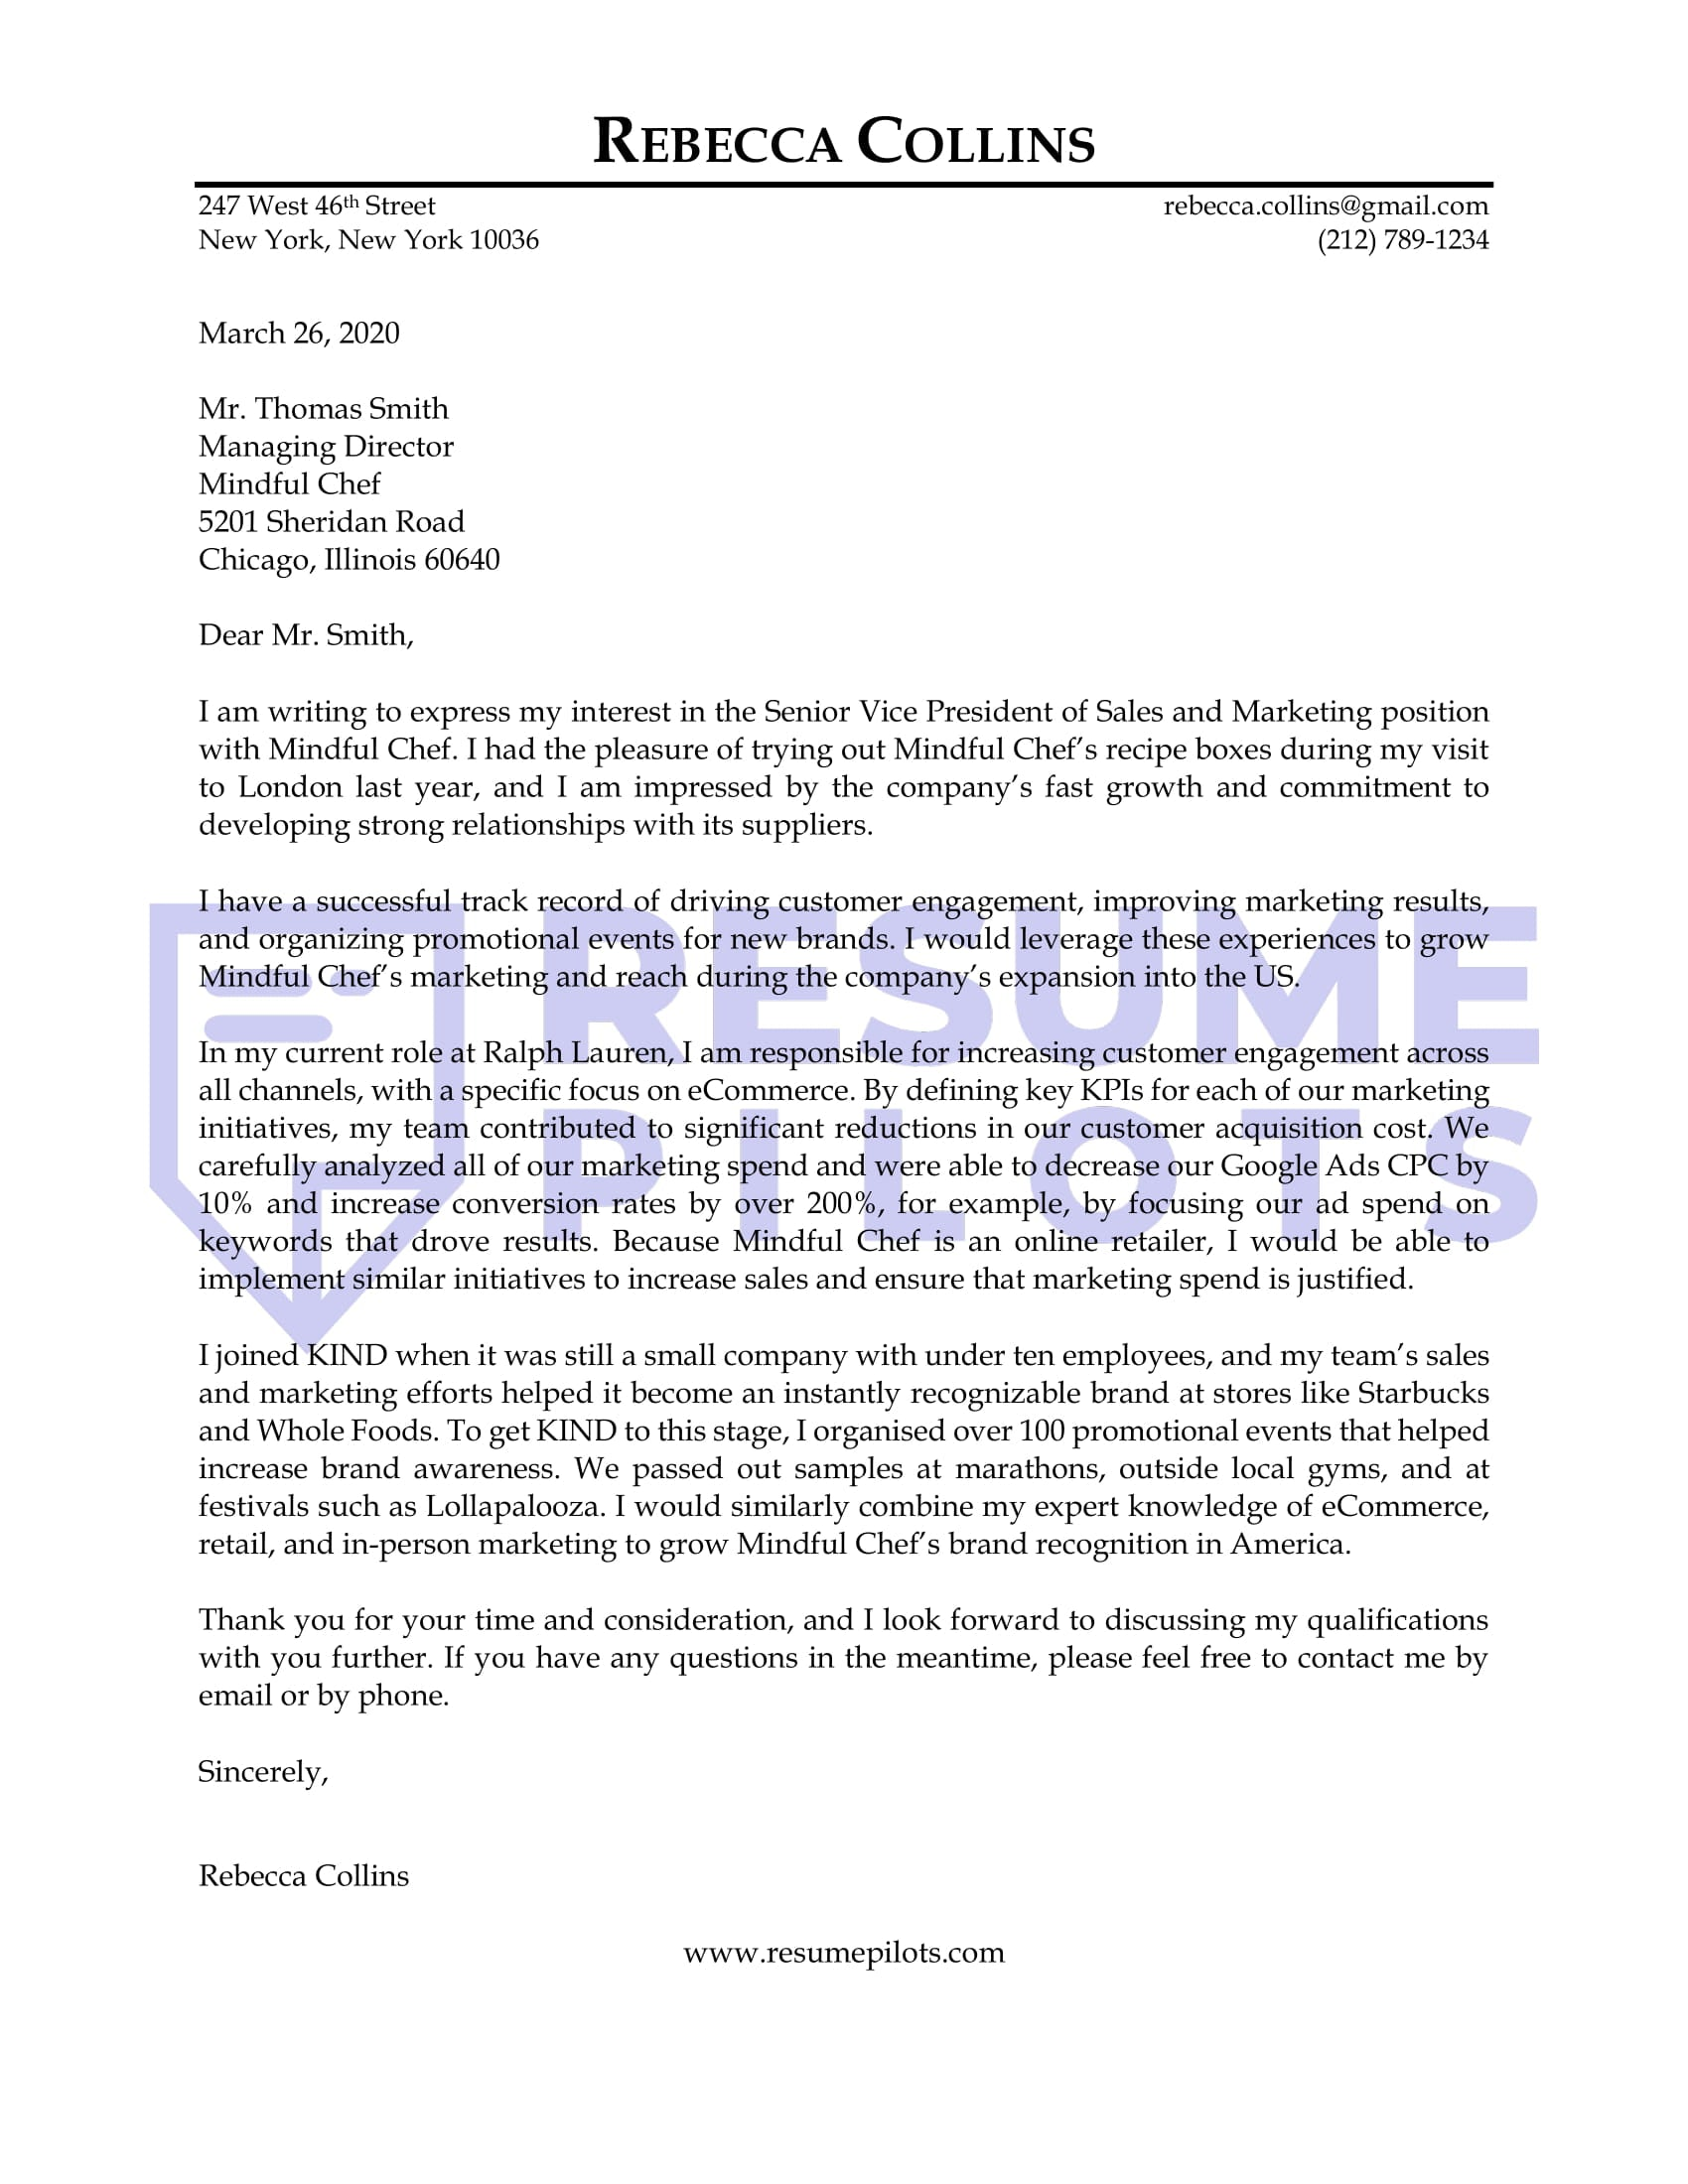 Sales And Marketing Cover Letter Sample 6 Reasons It Works Resume Pilots